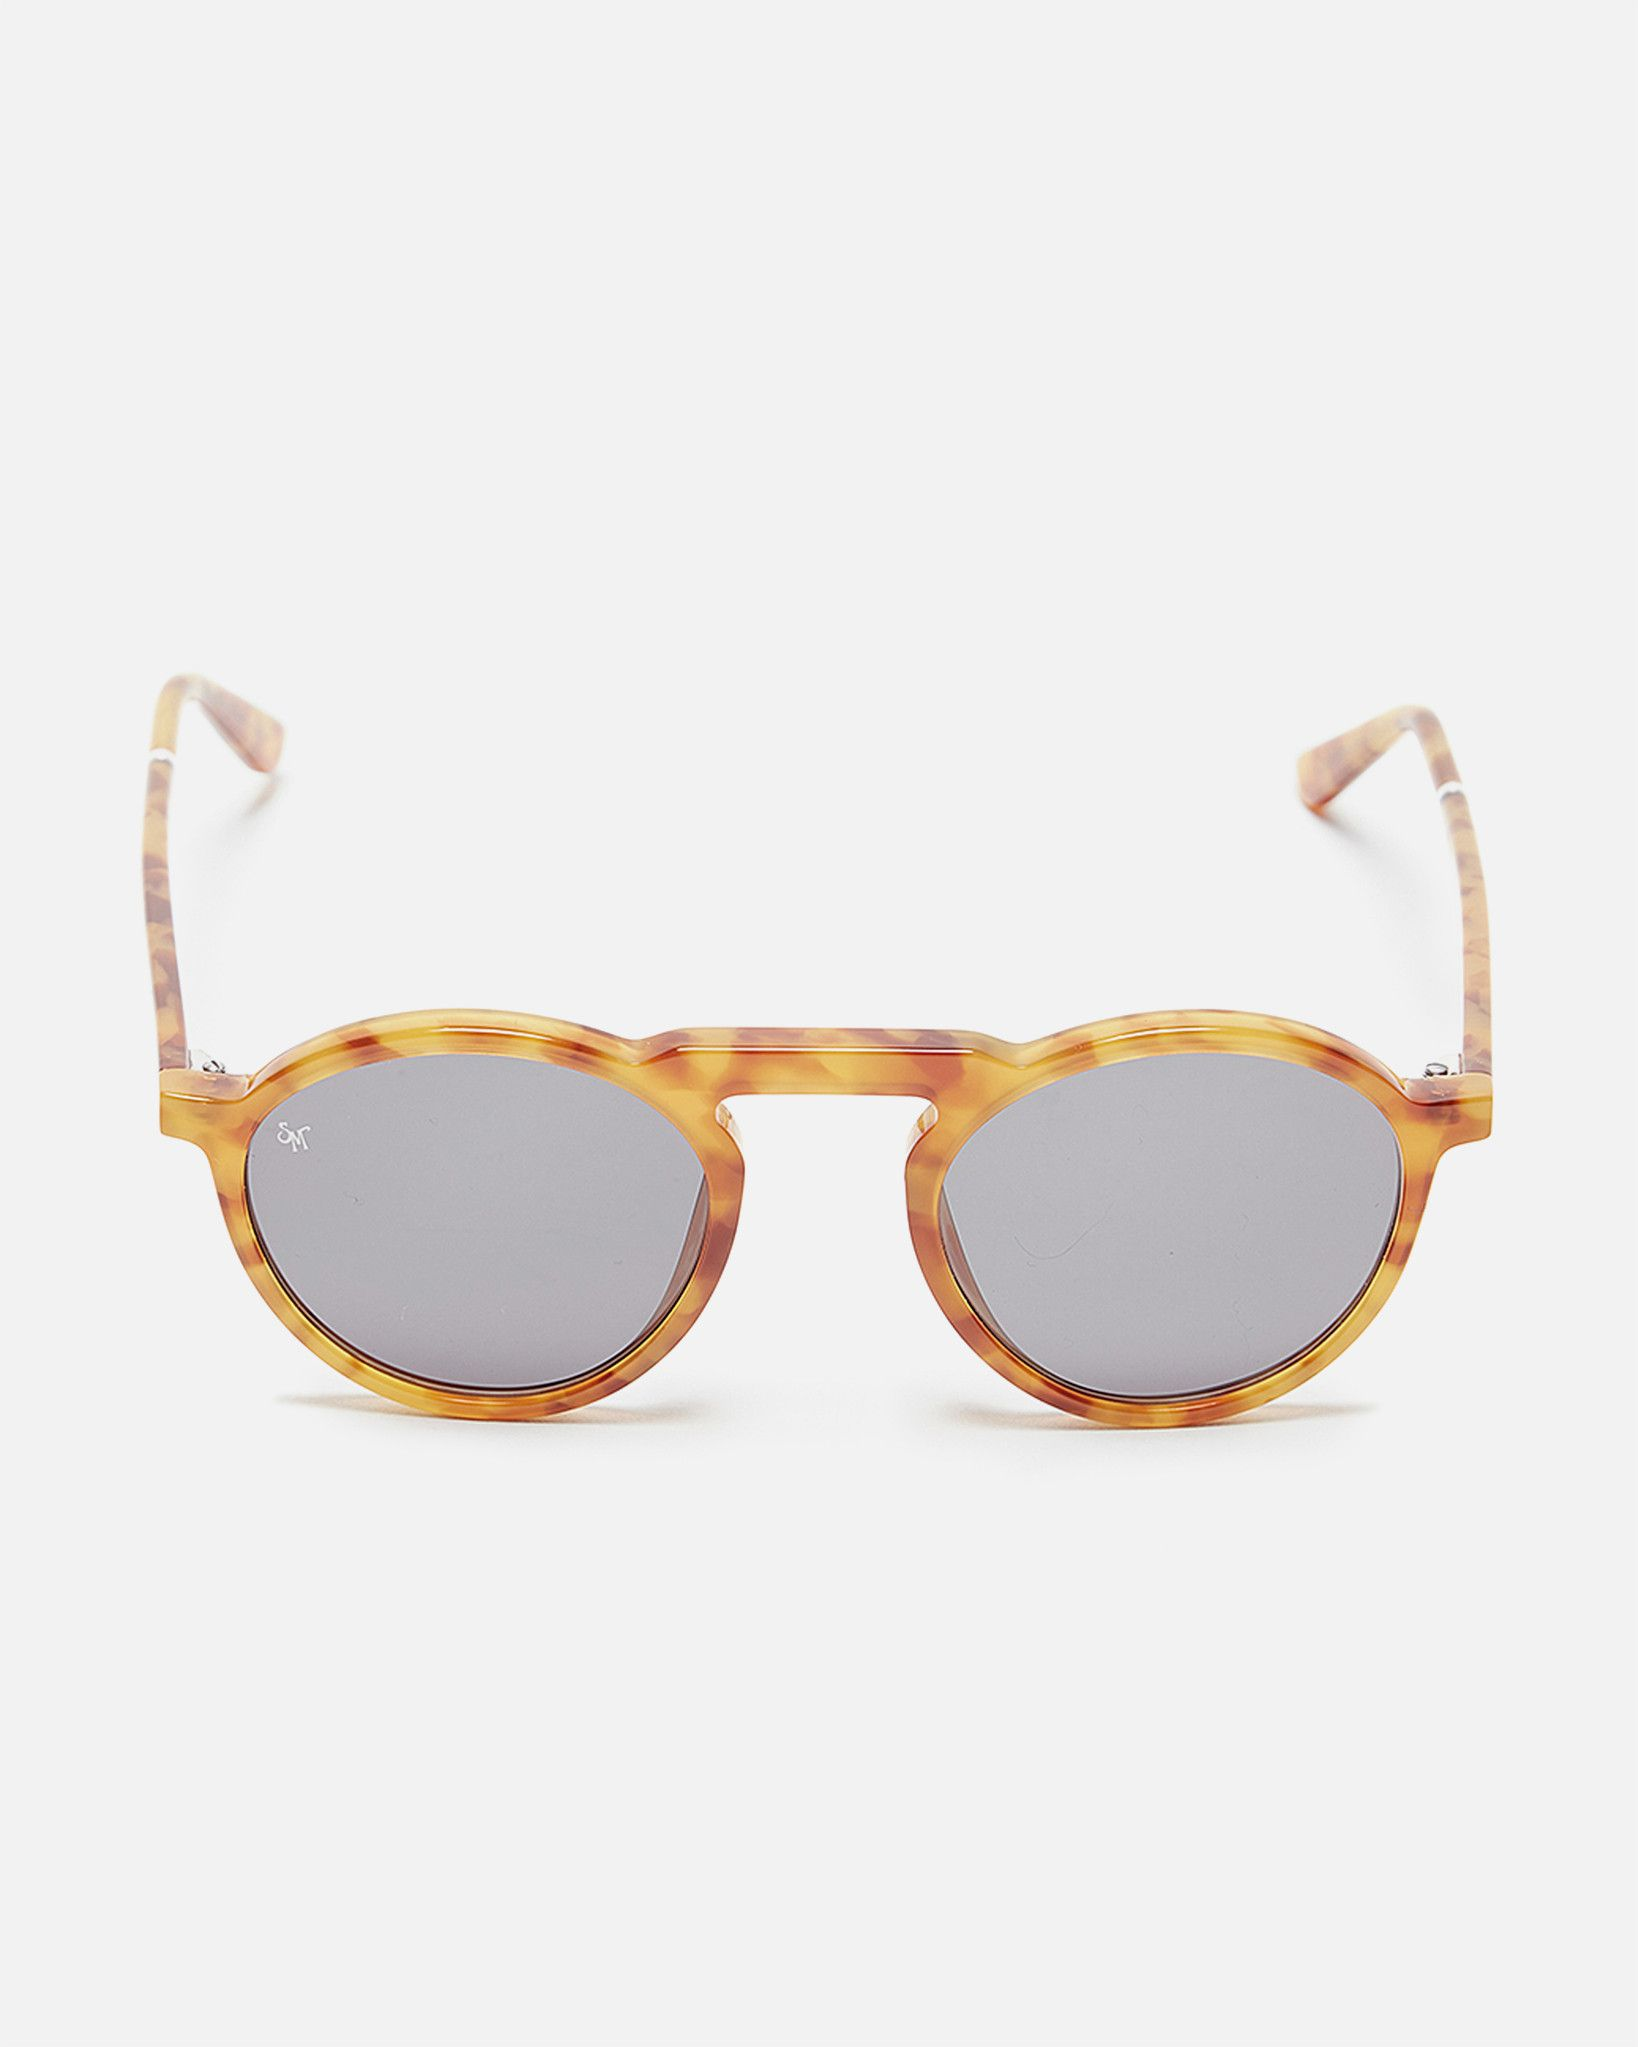 Letter Sunglasses in Ginger Glam